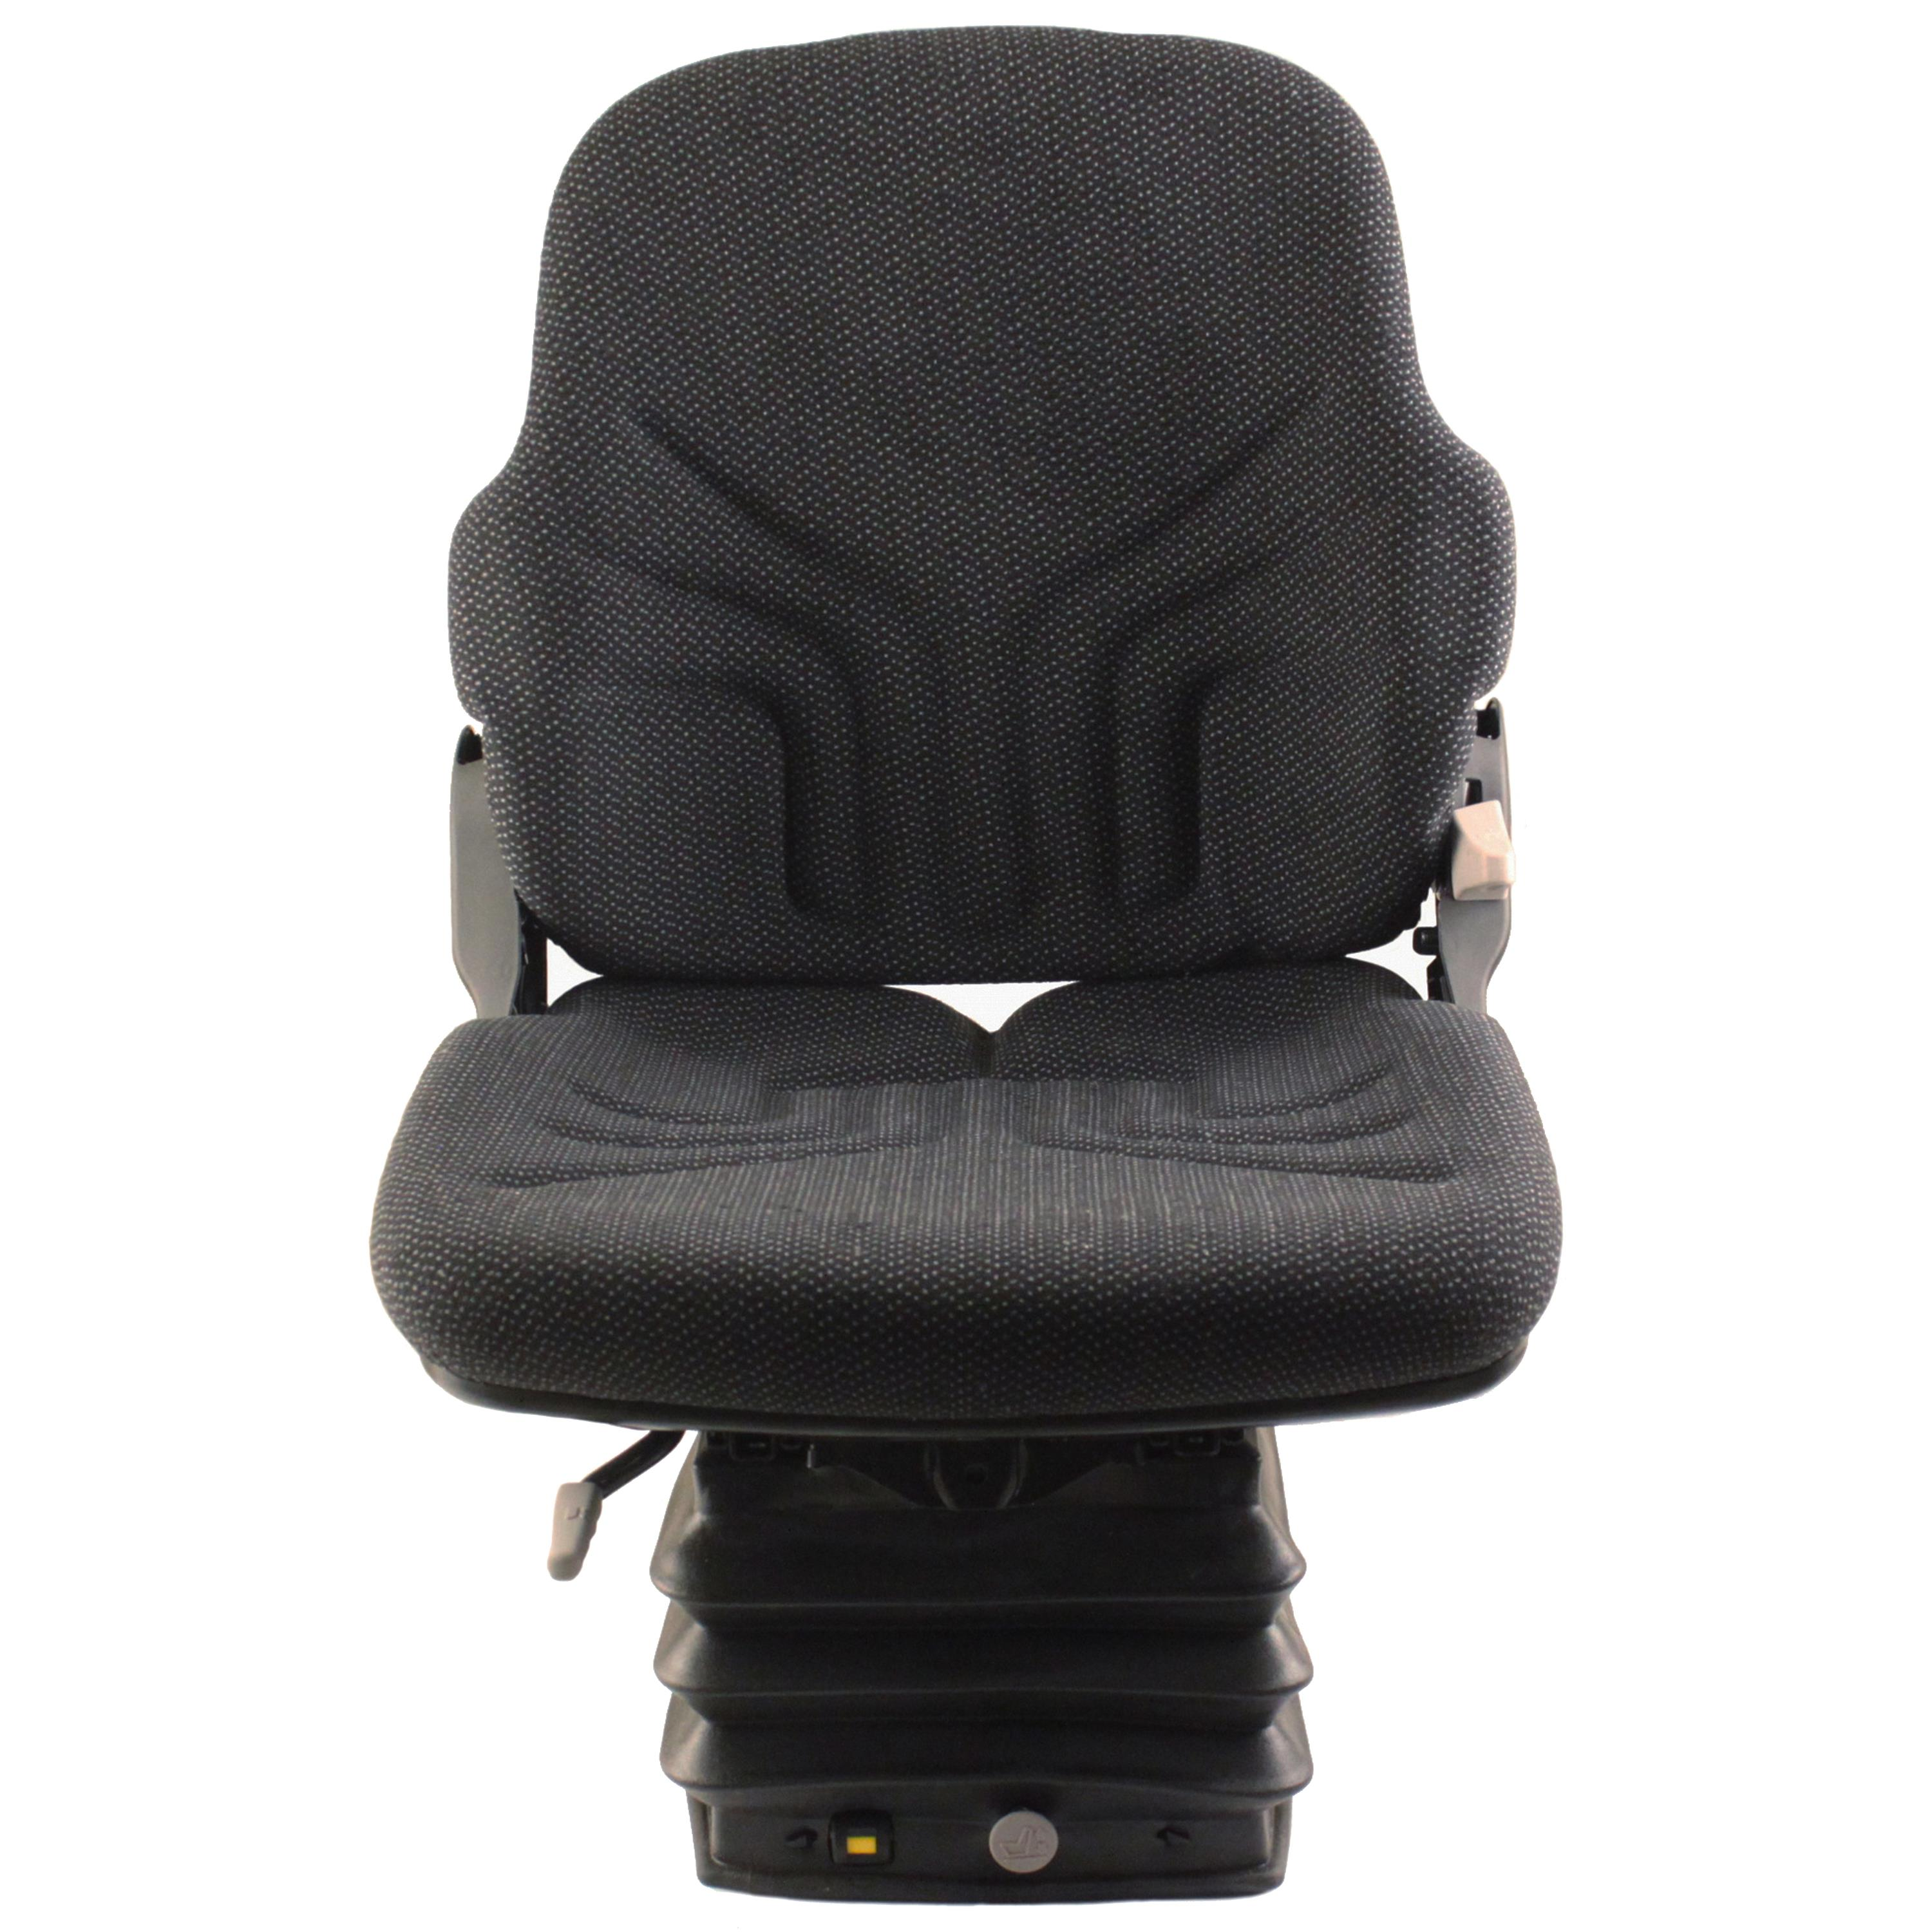 Case IH XL Tractor Air Seat Ford New Holland Massey Deere David Brown McCormick